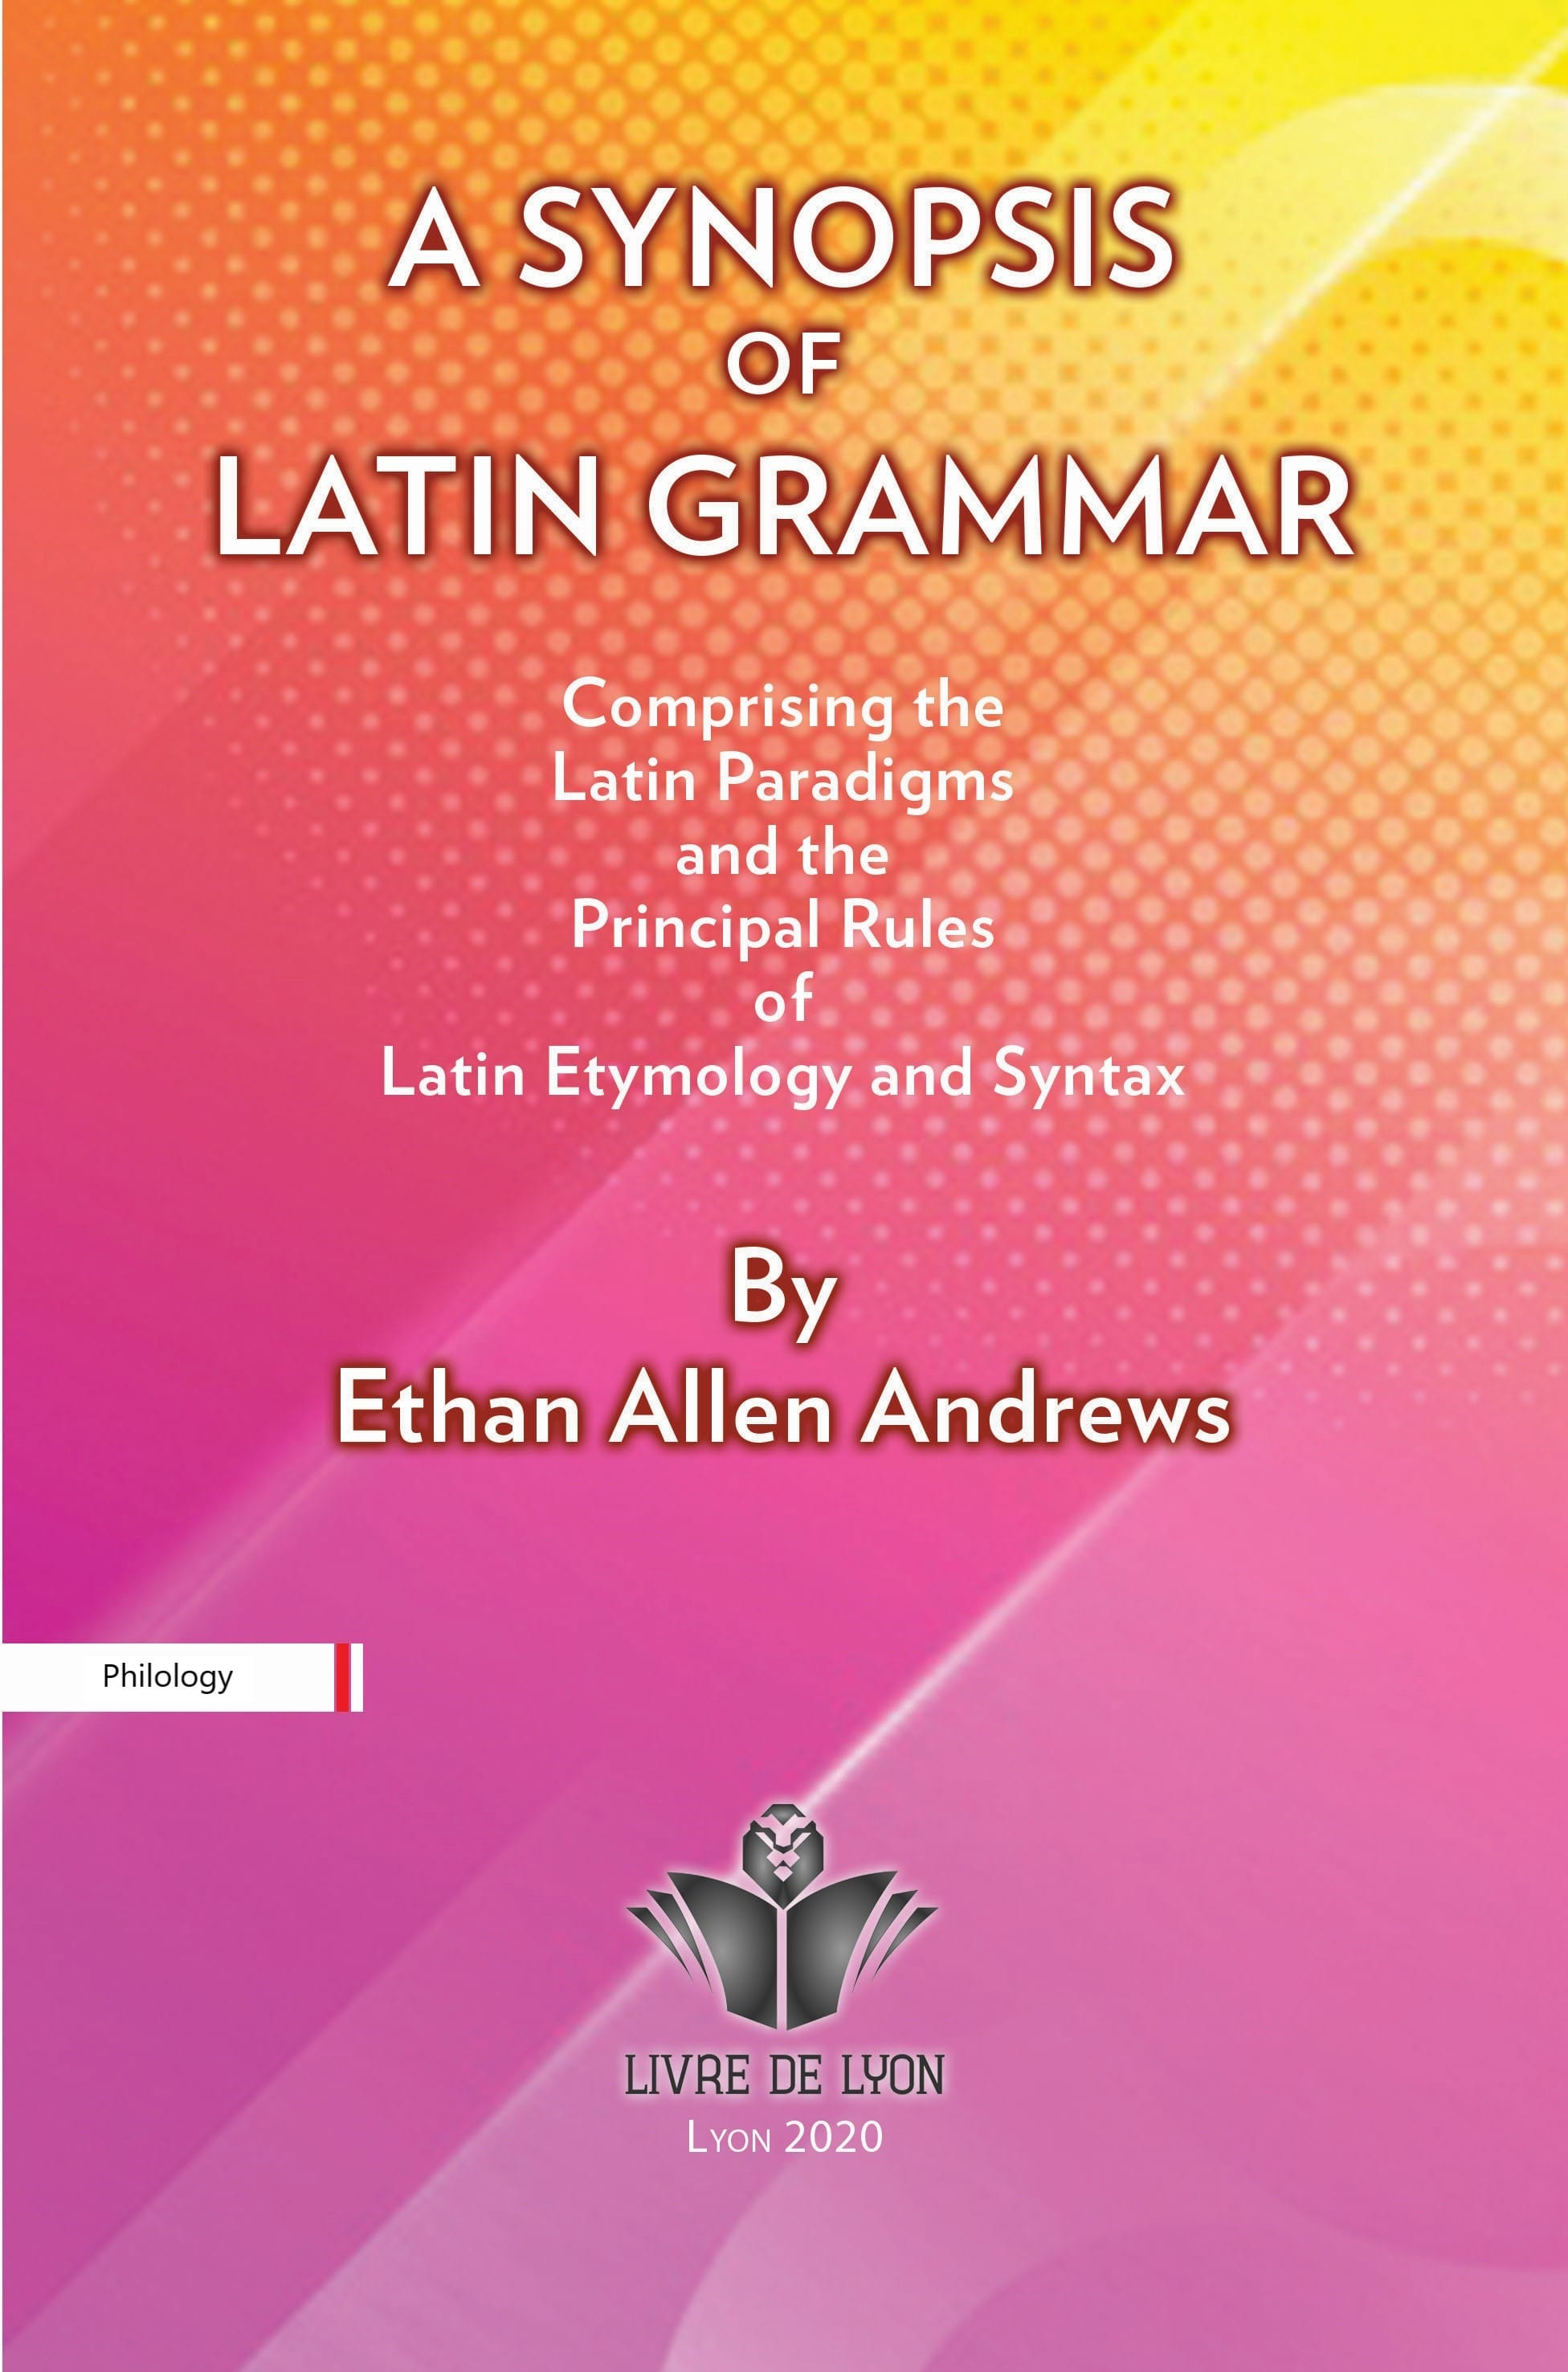 A Synopsis of Latin Grammar: Comprising the Latin Paradigms, and the Principal Rules of Latin Etymol